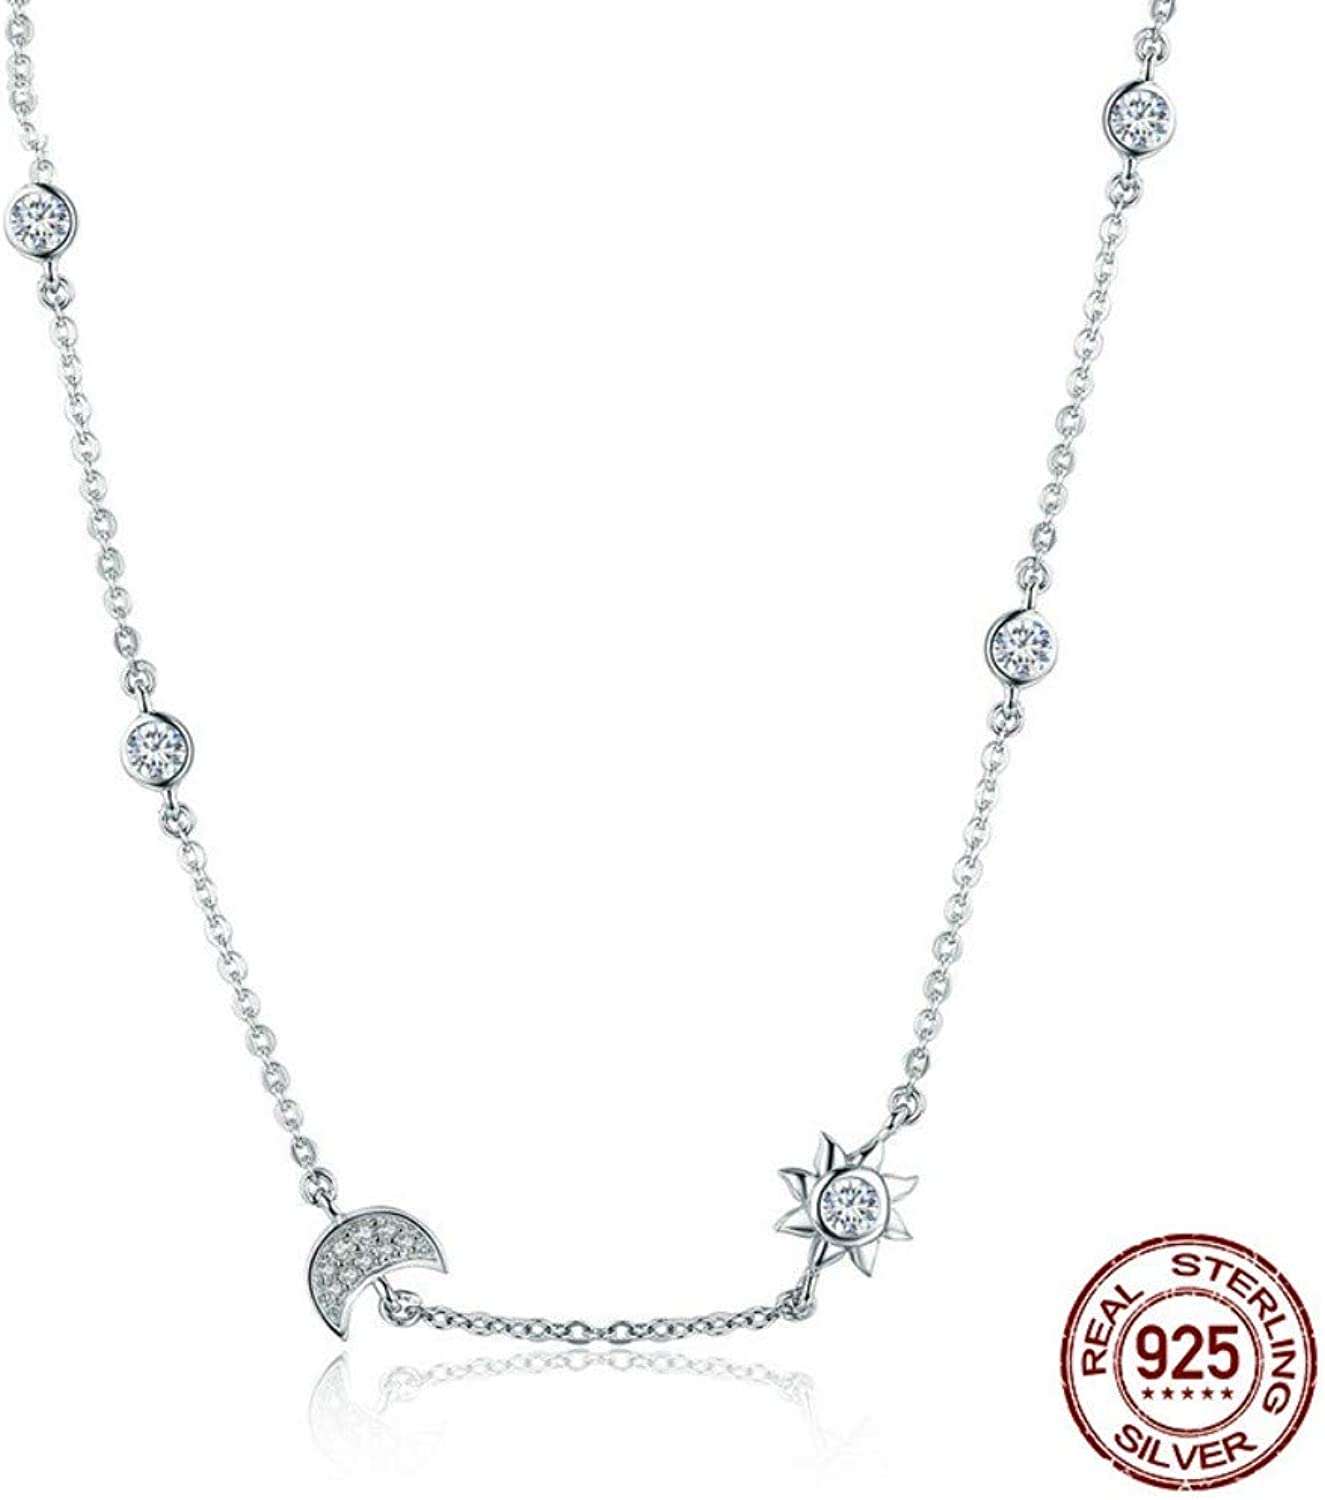 QMM necklace Pendant 100% 925 Sterling Silver Sparkling Moon and Star Exquisite Pendant Necklaces for Women 925 Silver Jewelry Gift